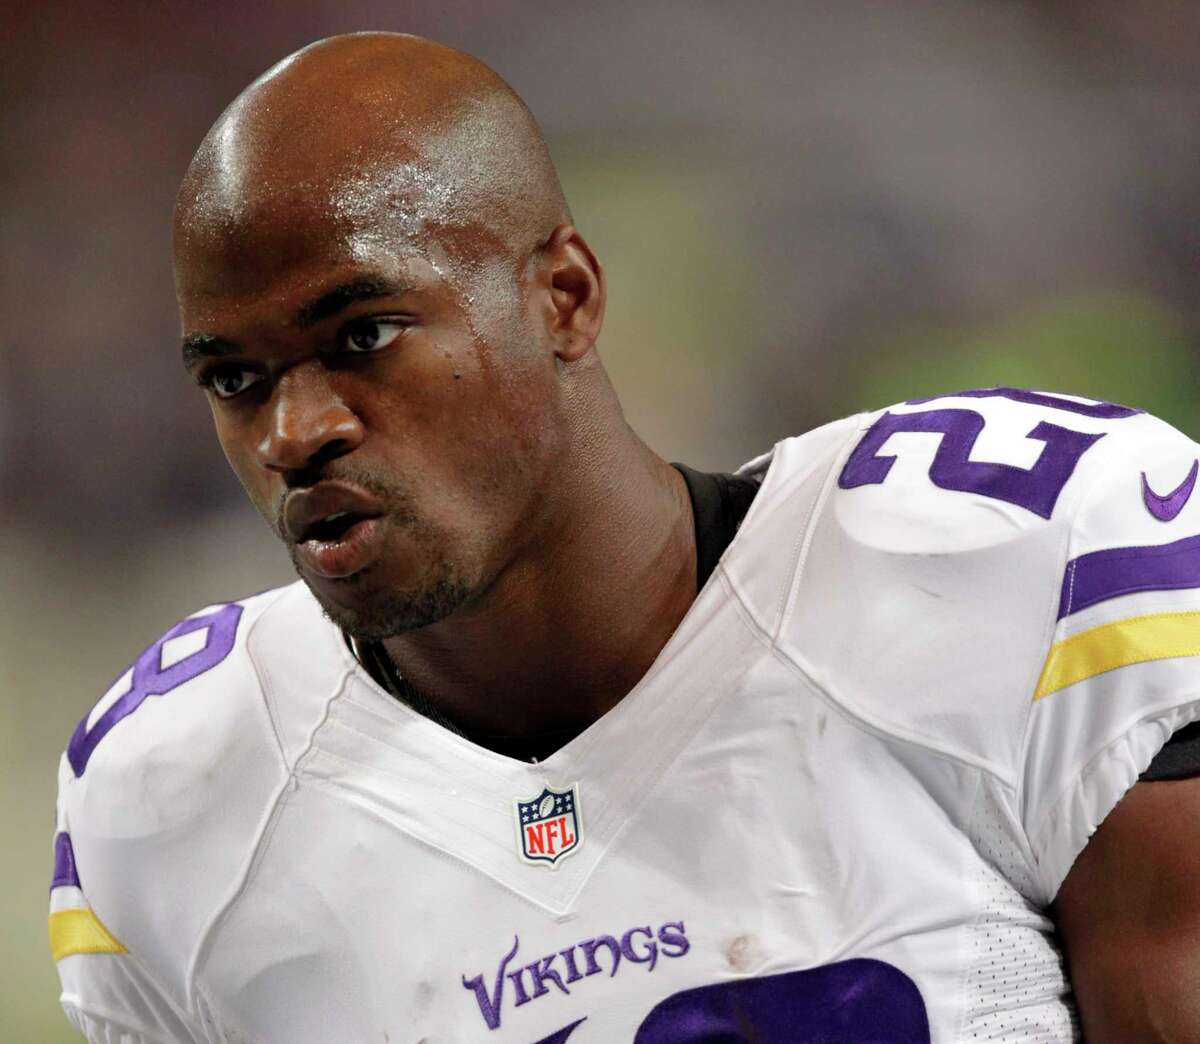 Minnesota Vikings running back Adrian Peterson warms up for a Sept. 7 game against the Rams in St. Louis.